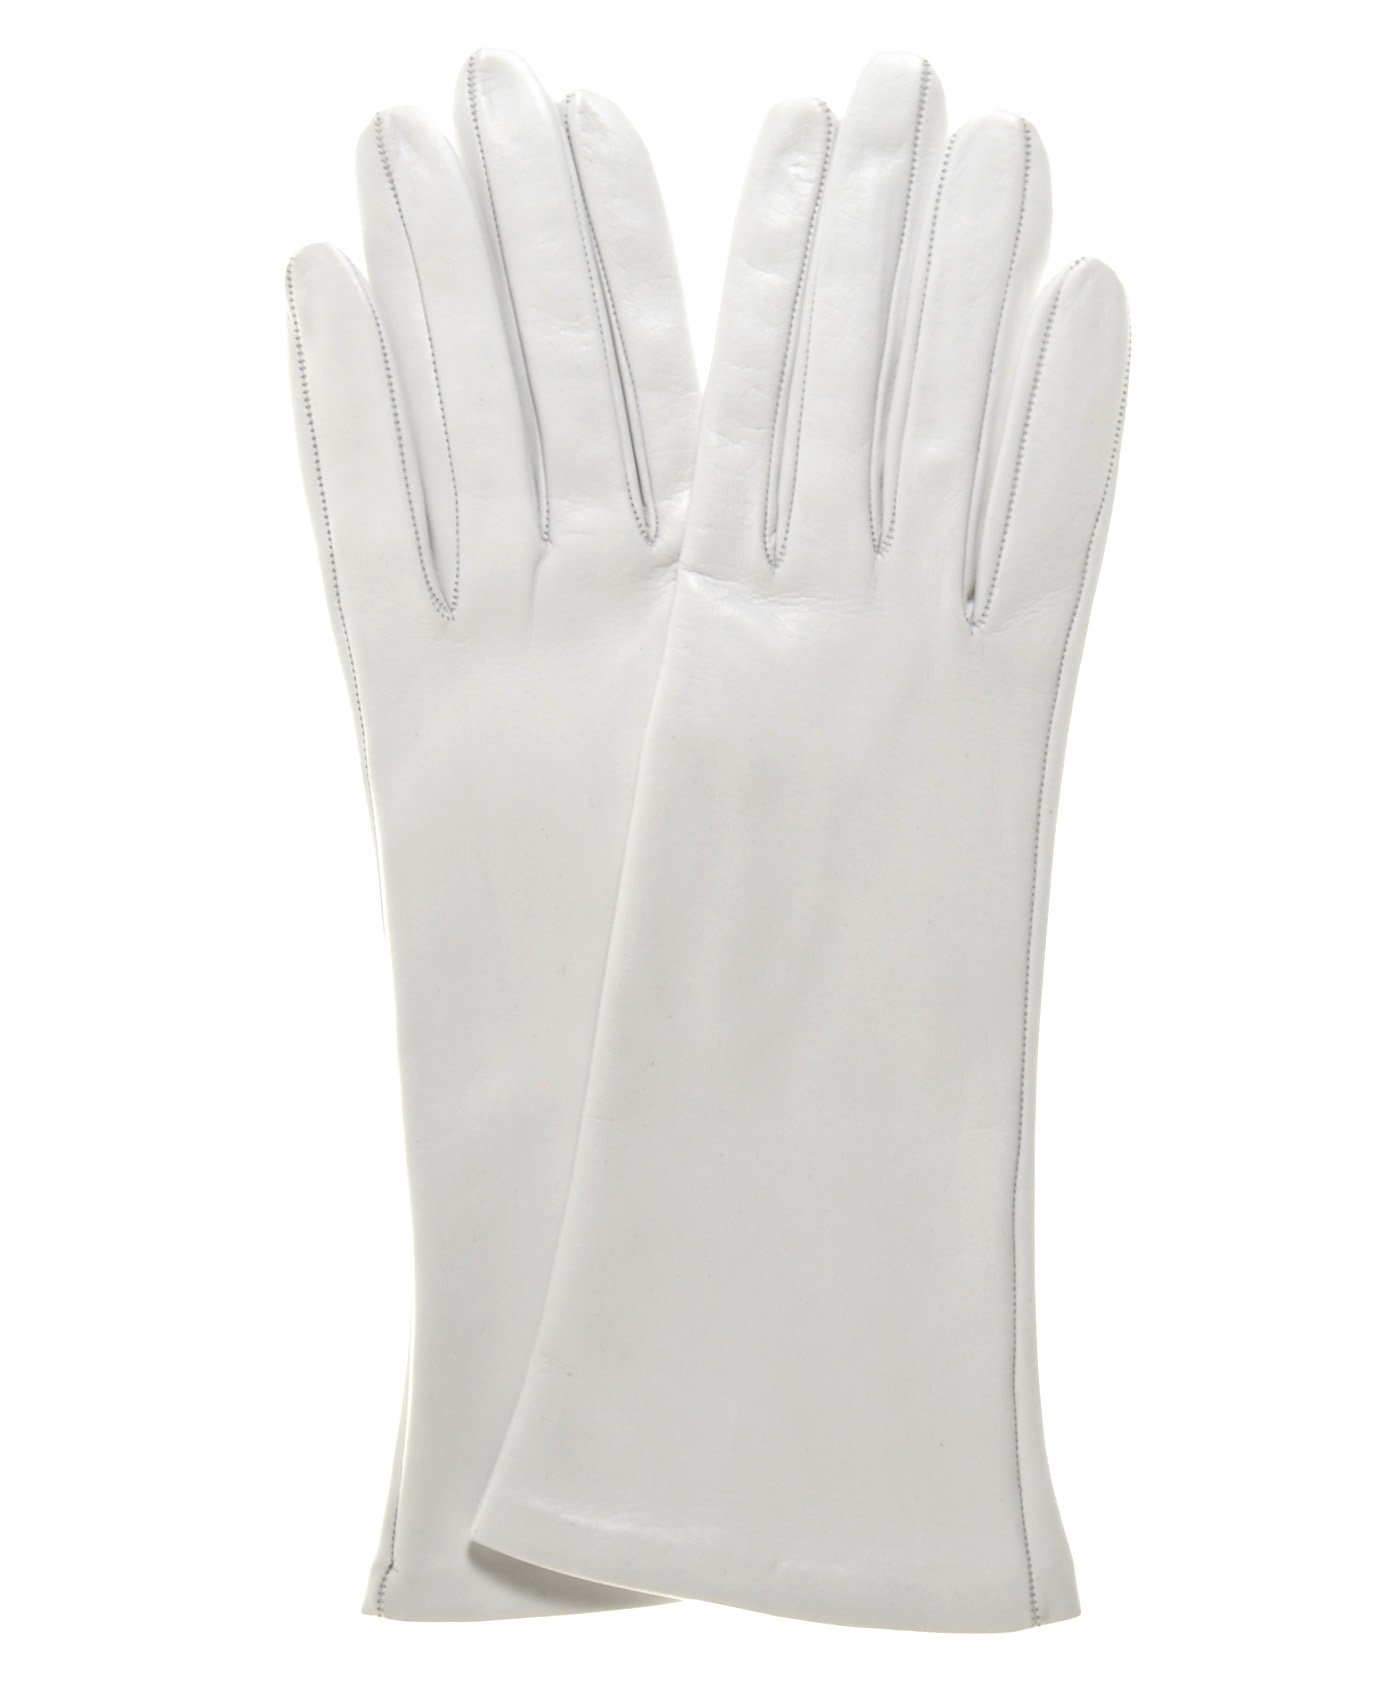 Fratelli Orsini Women's Italian Silk Lined 4-Button Length Bridal Gloves Size 7 Color Ivory by Fratelli Orsini